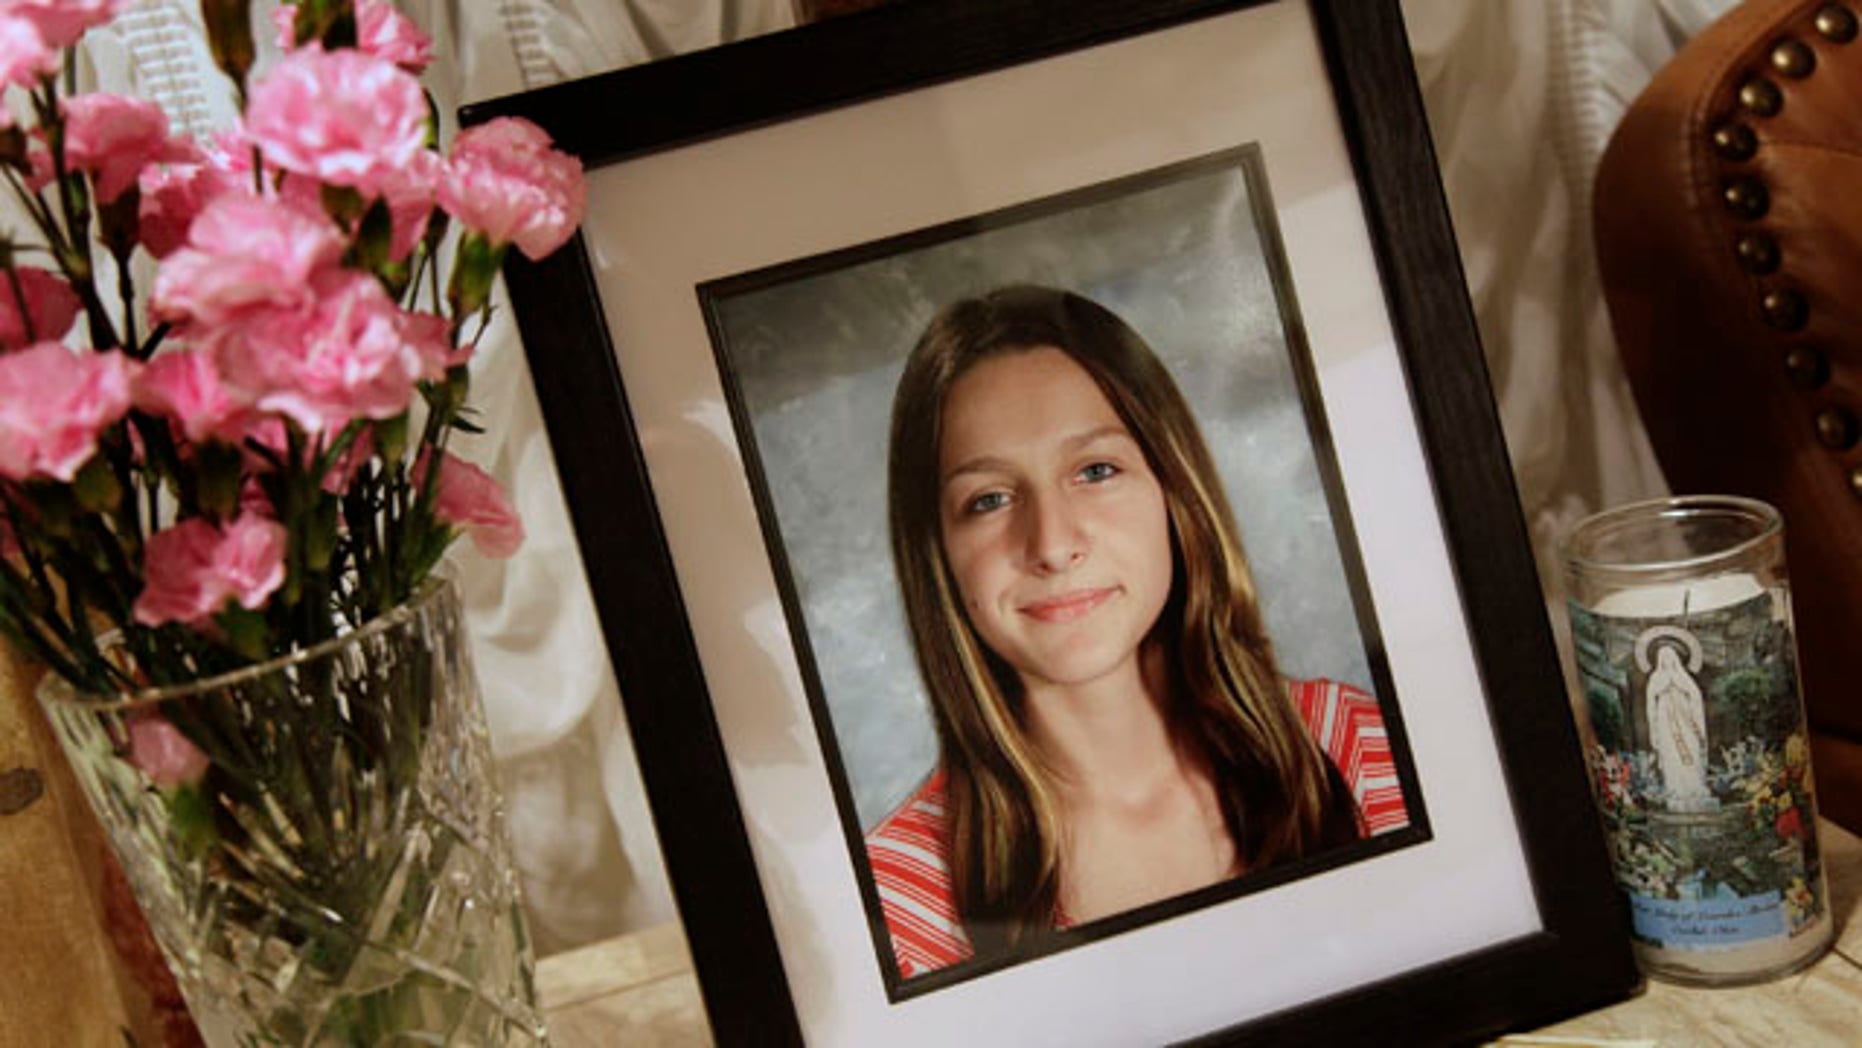 Sept. 1, 2010: A portrait of Sladjana Vidovic, who committed suicide in 2008, sits in the livingroom of her family's Mentor, Ohio home.